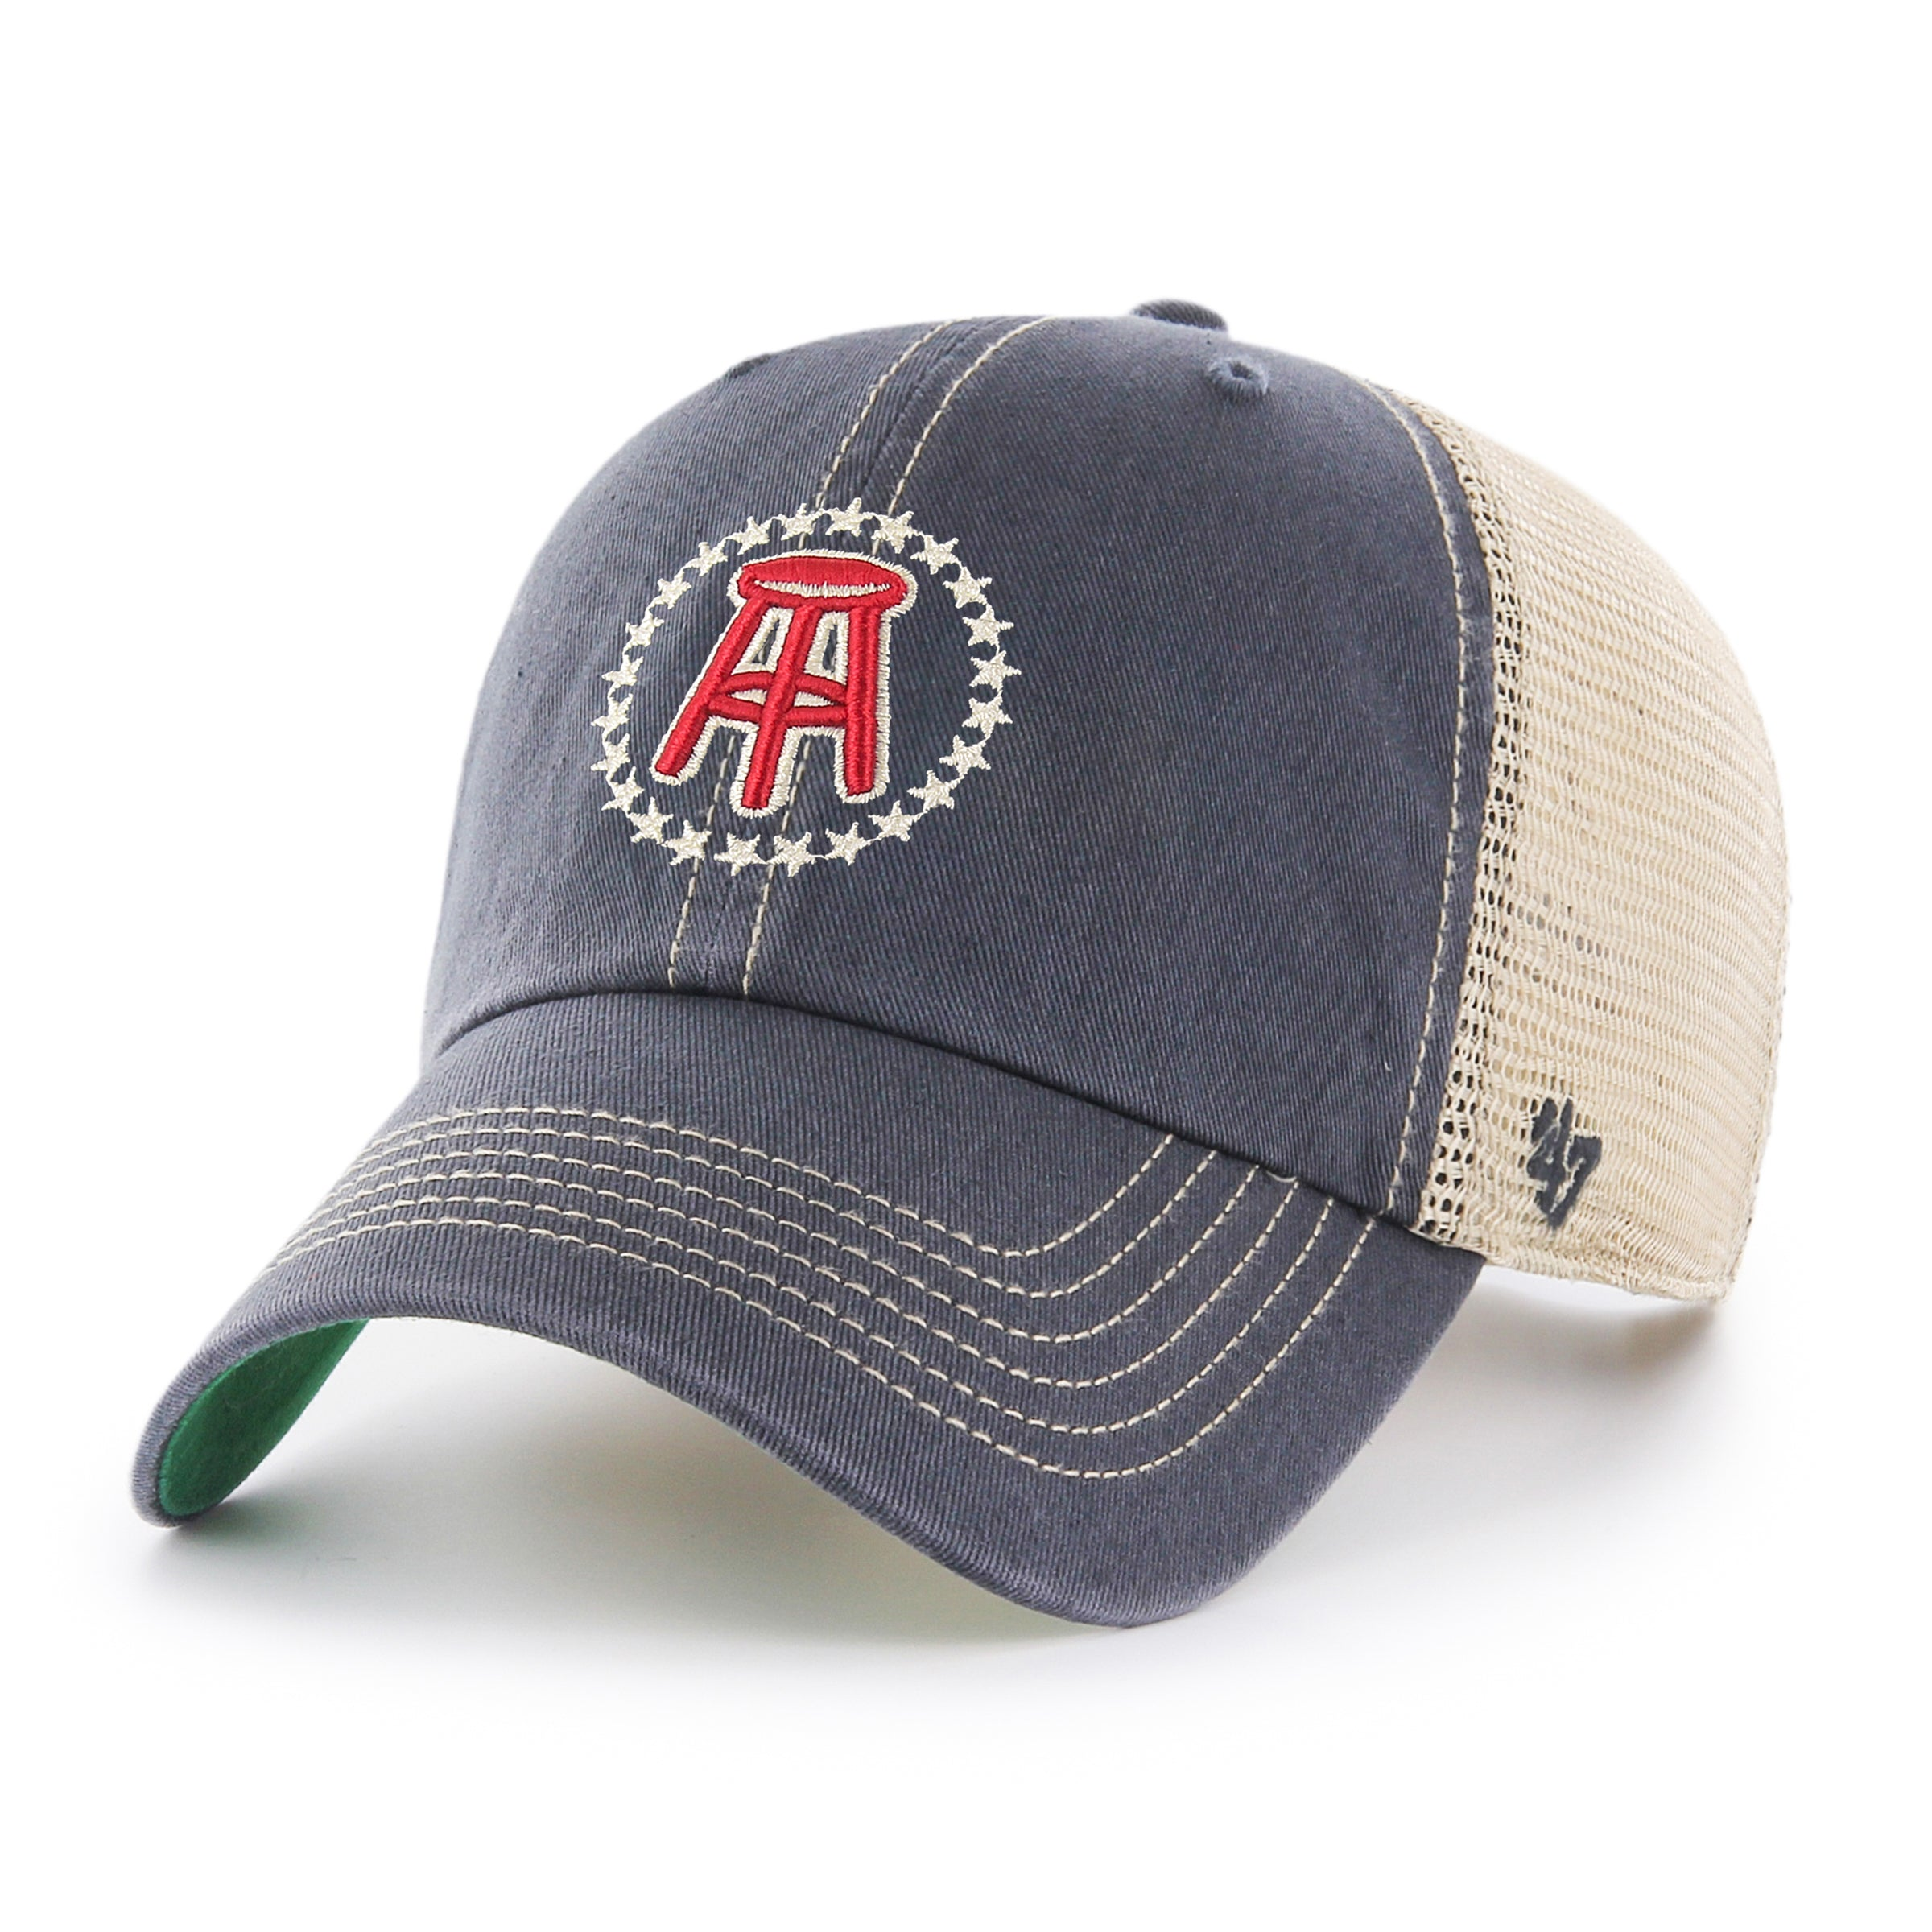 47 Brand Mesh Back Hat – Barstool Sports 033bf0ffa31